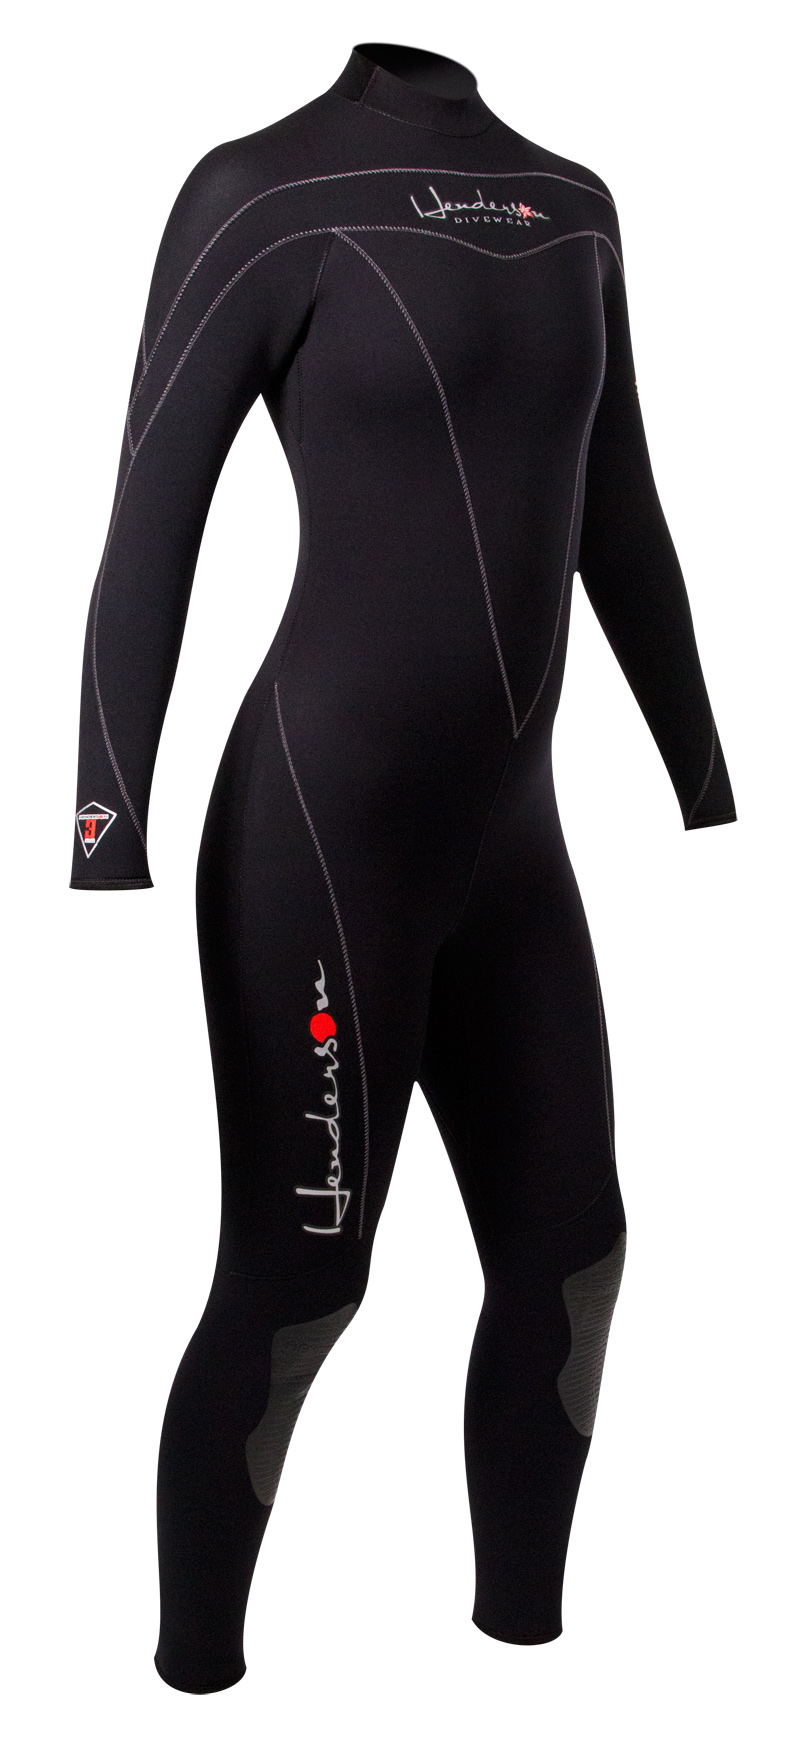 7mm Women's Wetsuit Thermoprene Henderson Diving Full TALL SIZES Available